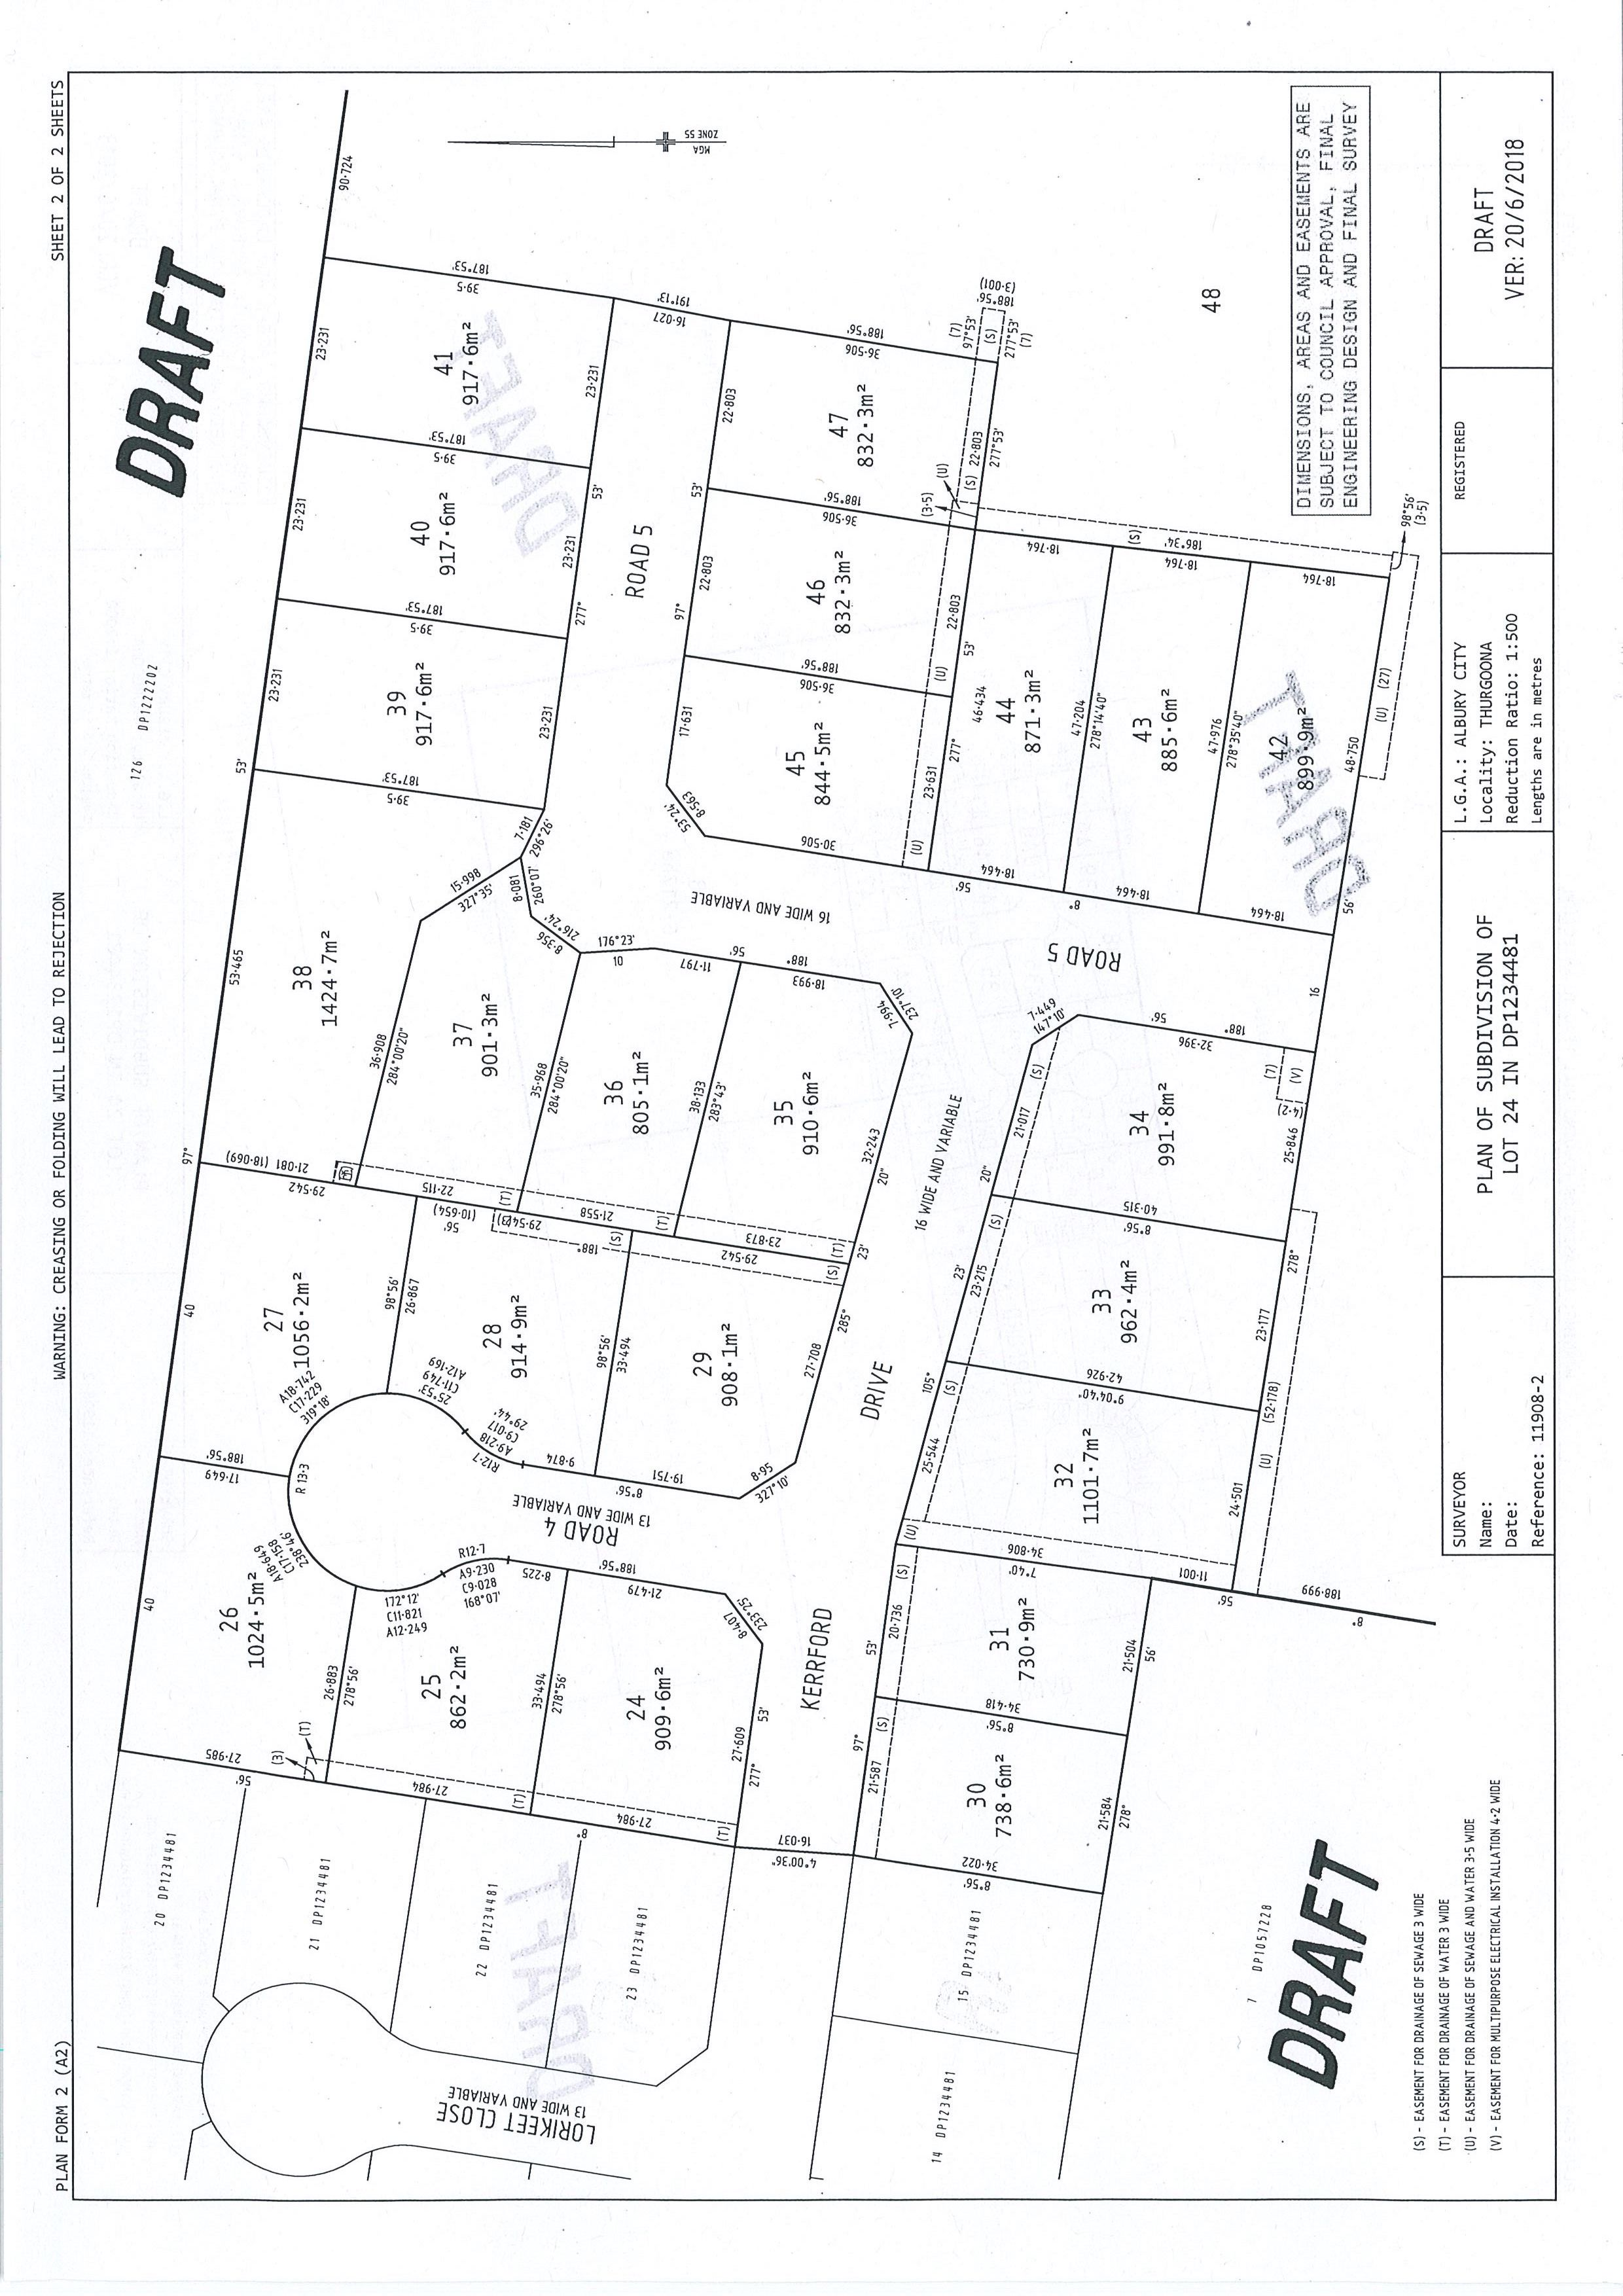 Kerrford-Stage-34-Draft-Plan-of-Subdivision_Page_1.jpg